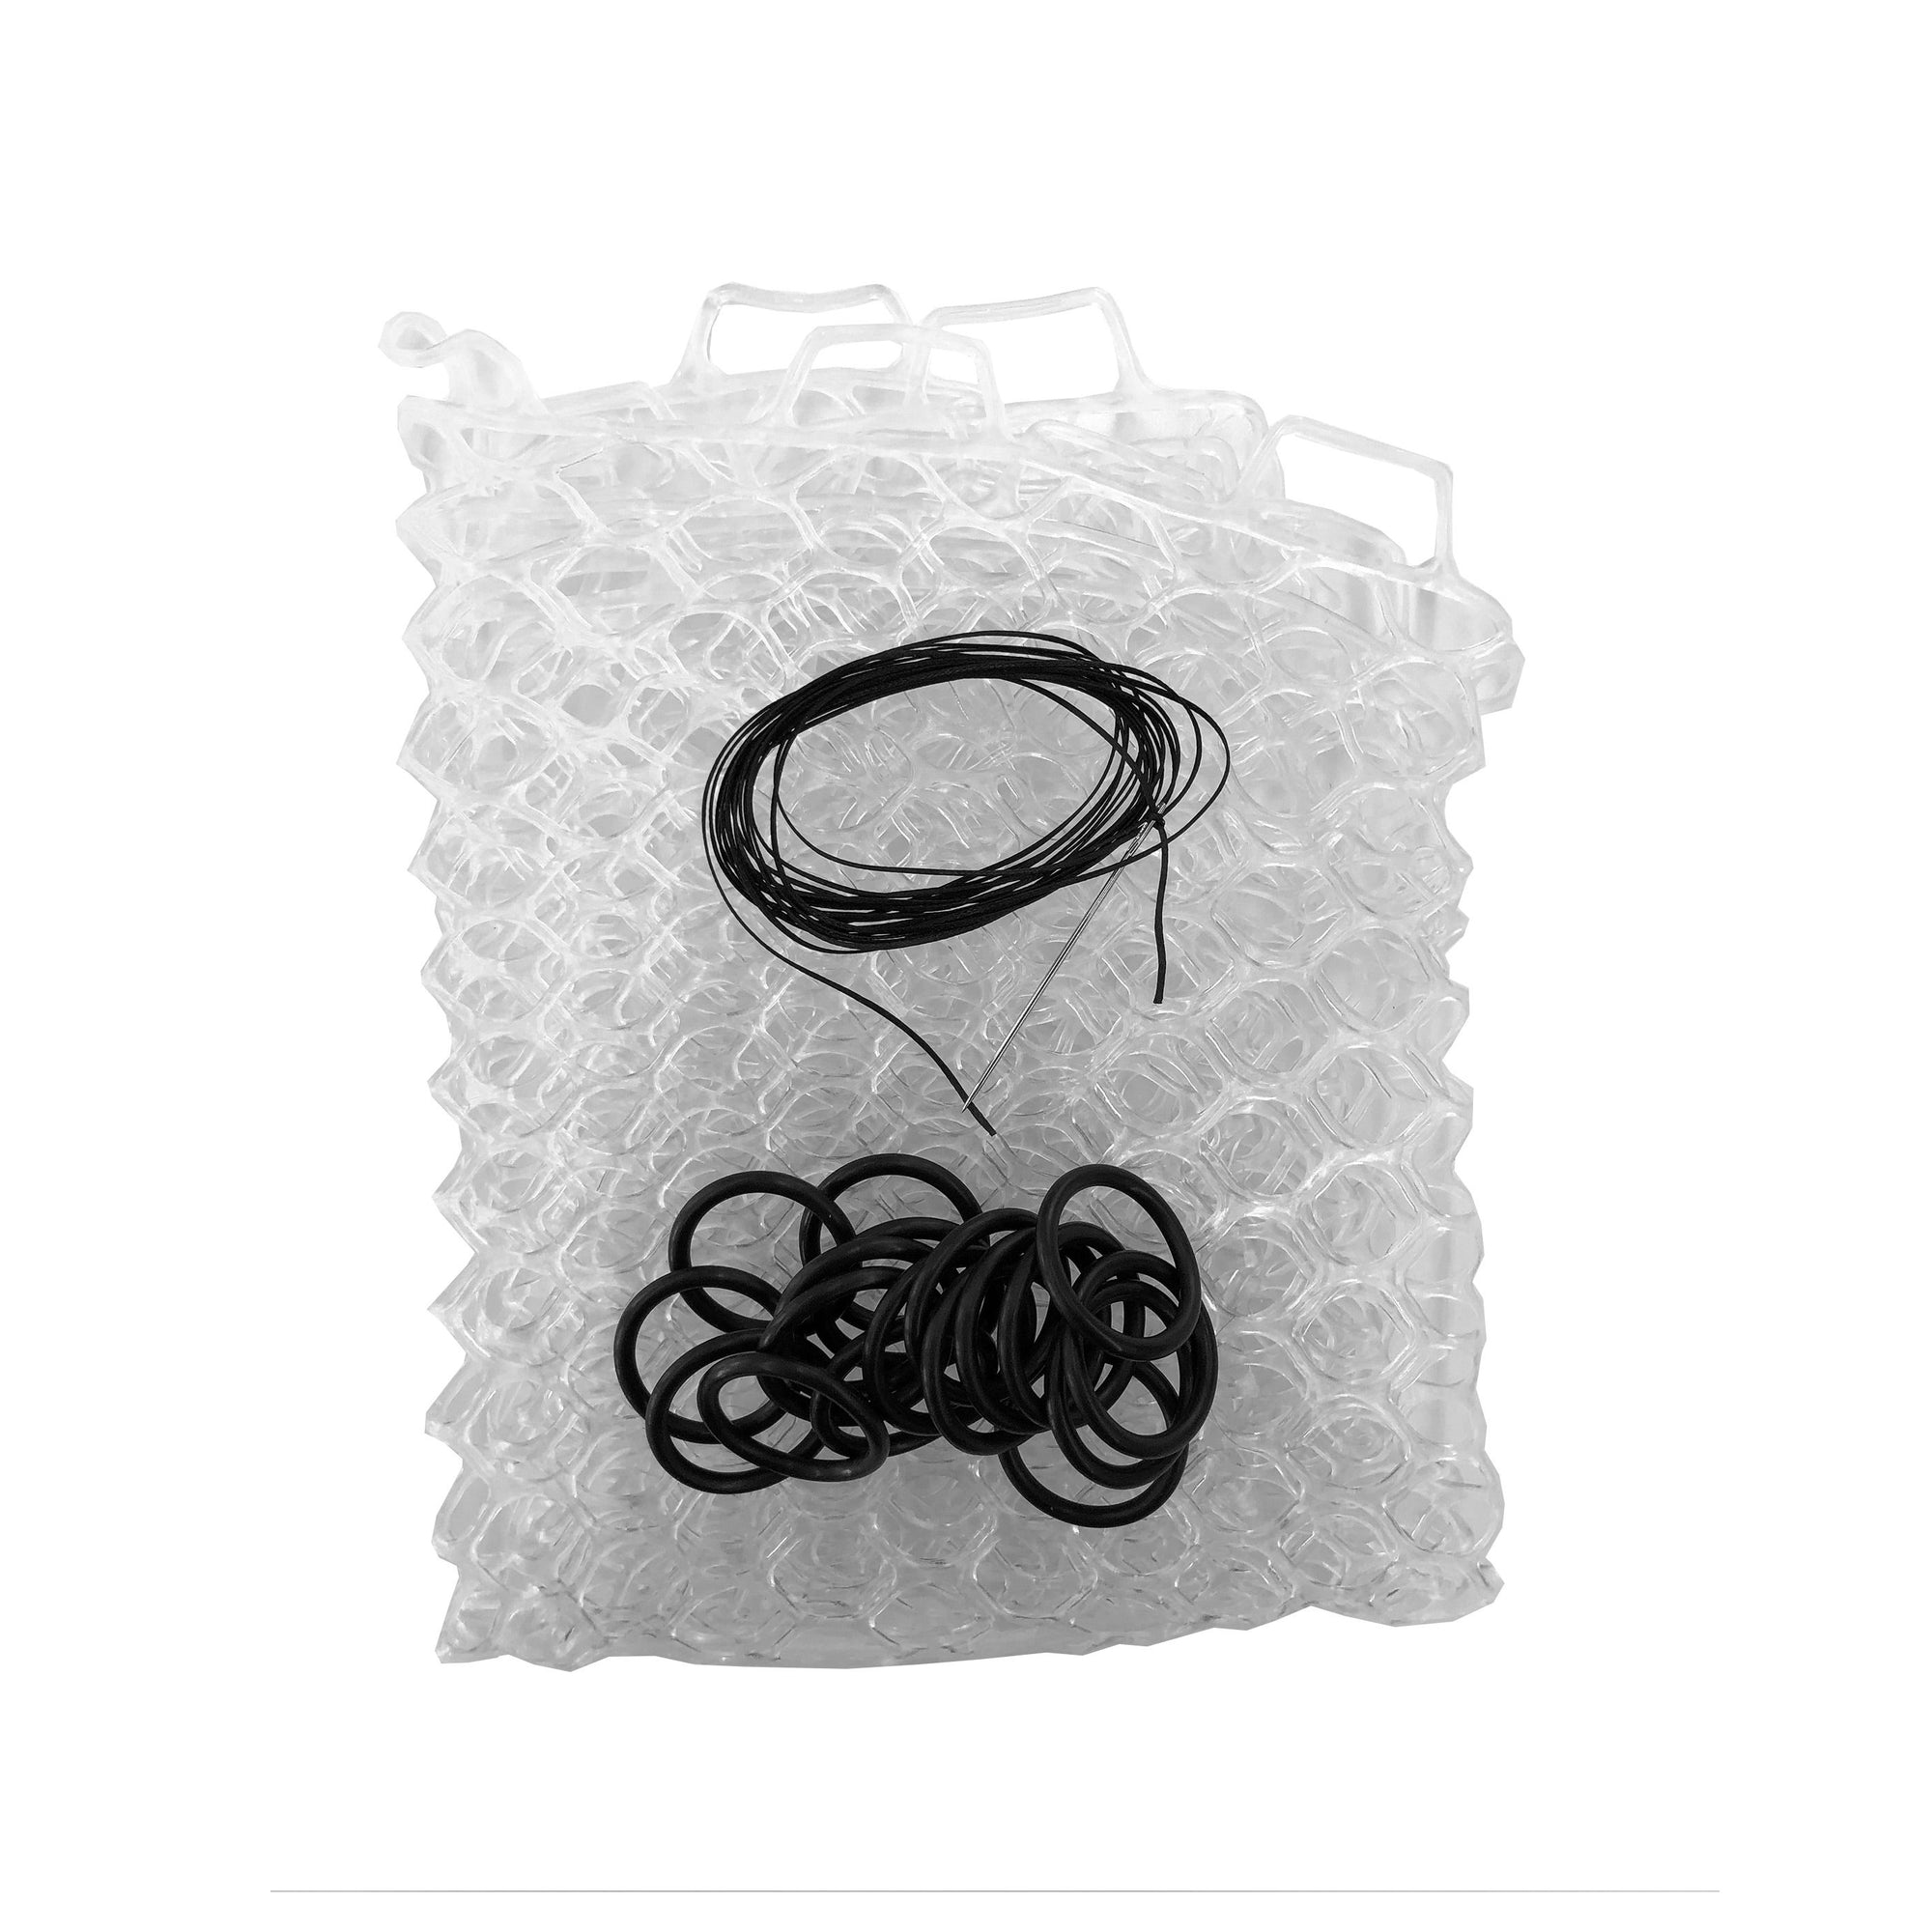 Fishpond Nomad Replacement Rubber Net 19""